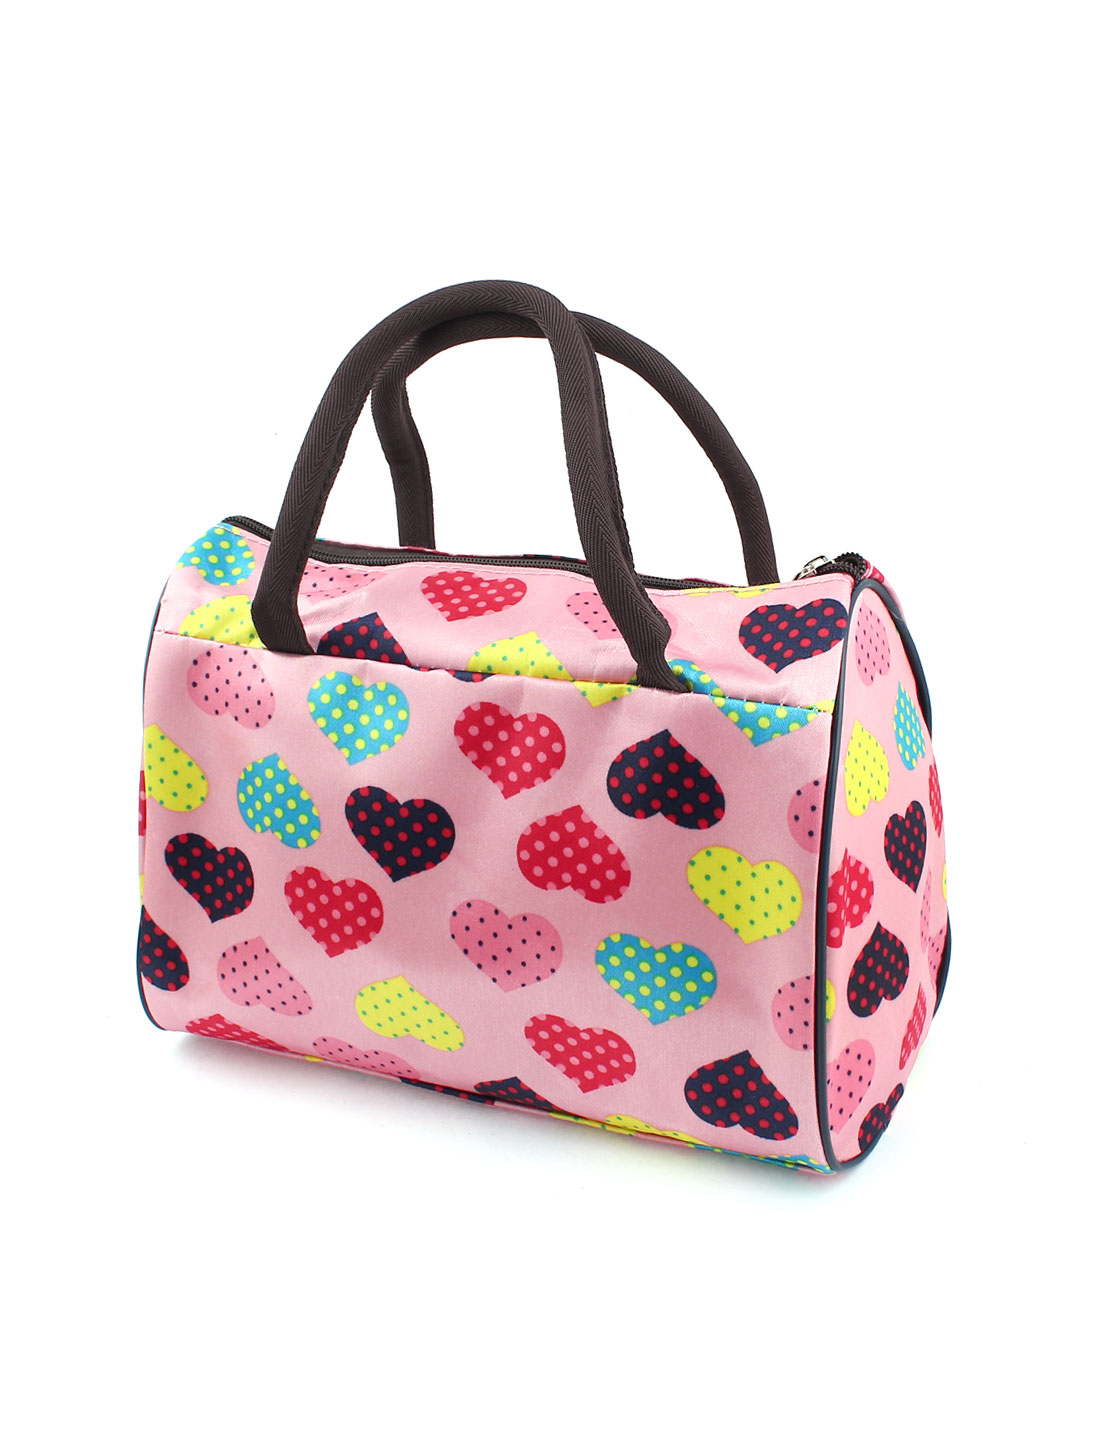 Women Multicolor Heart Pattern Zipper Closure Handbag Bag Pink